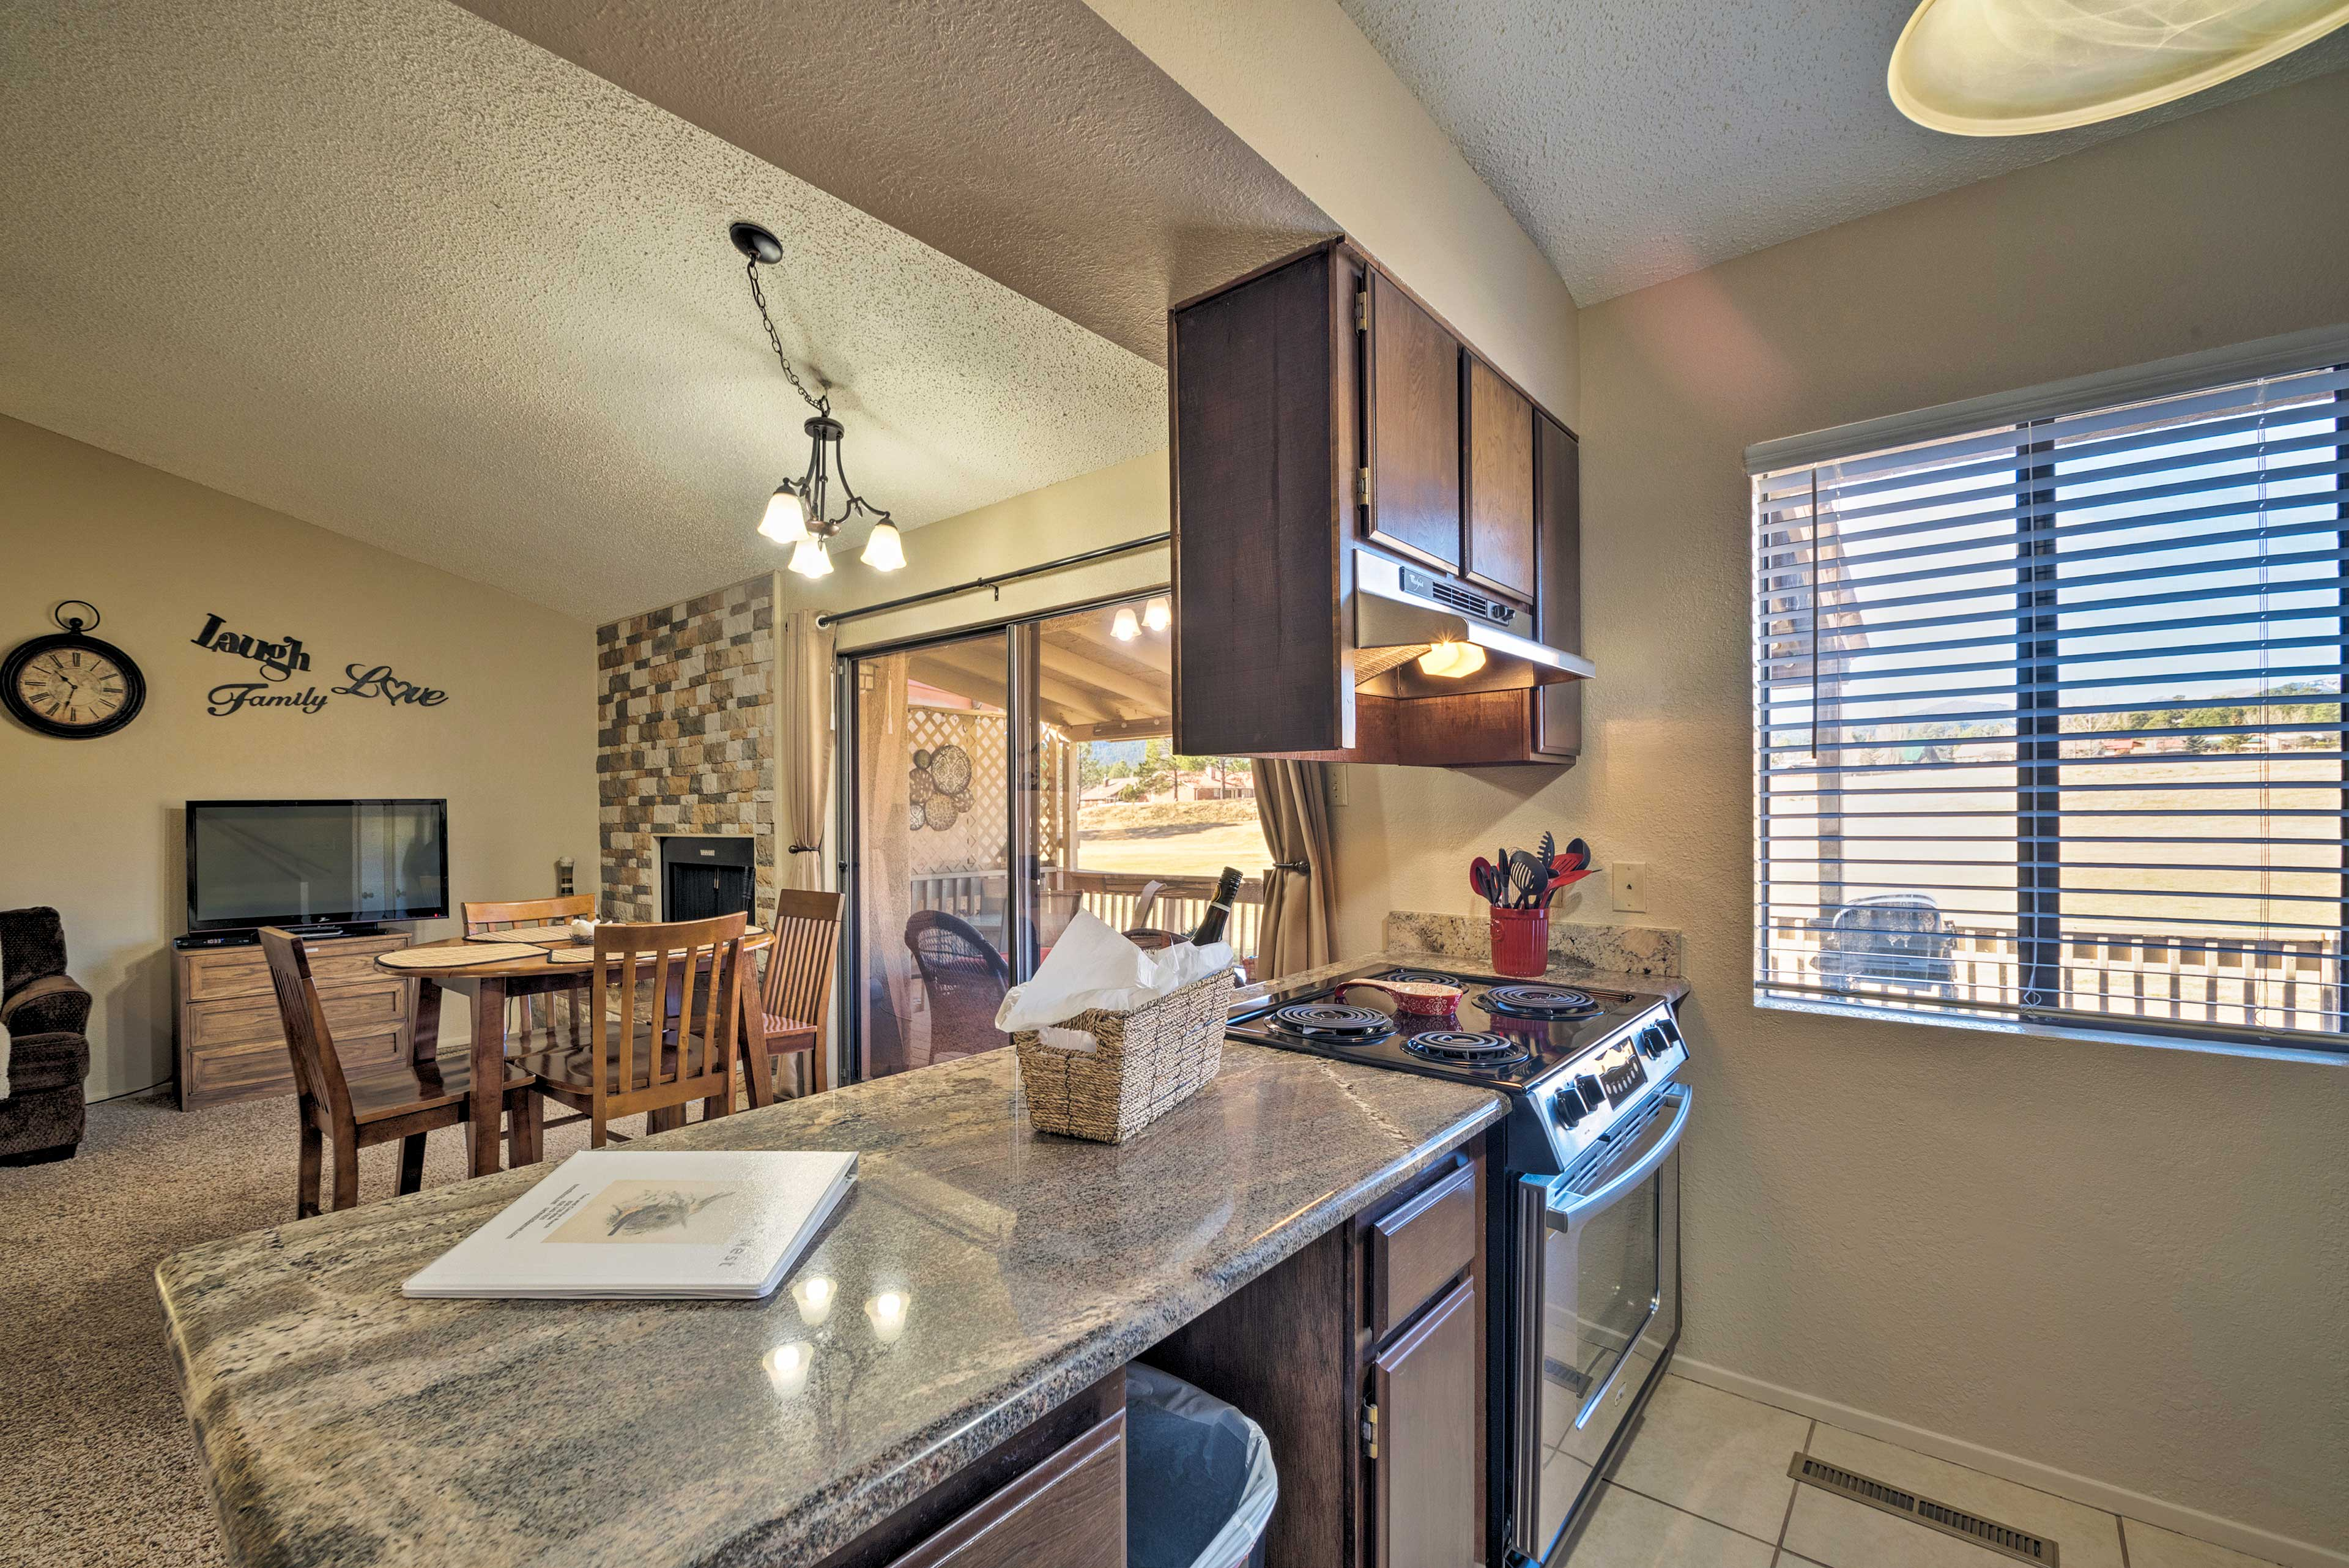 You'll love whipping up your favorite recipes in this open kitchen.